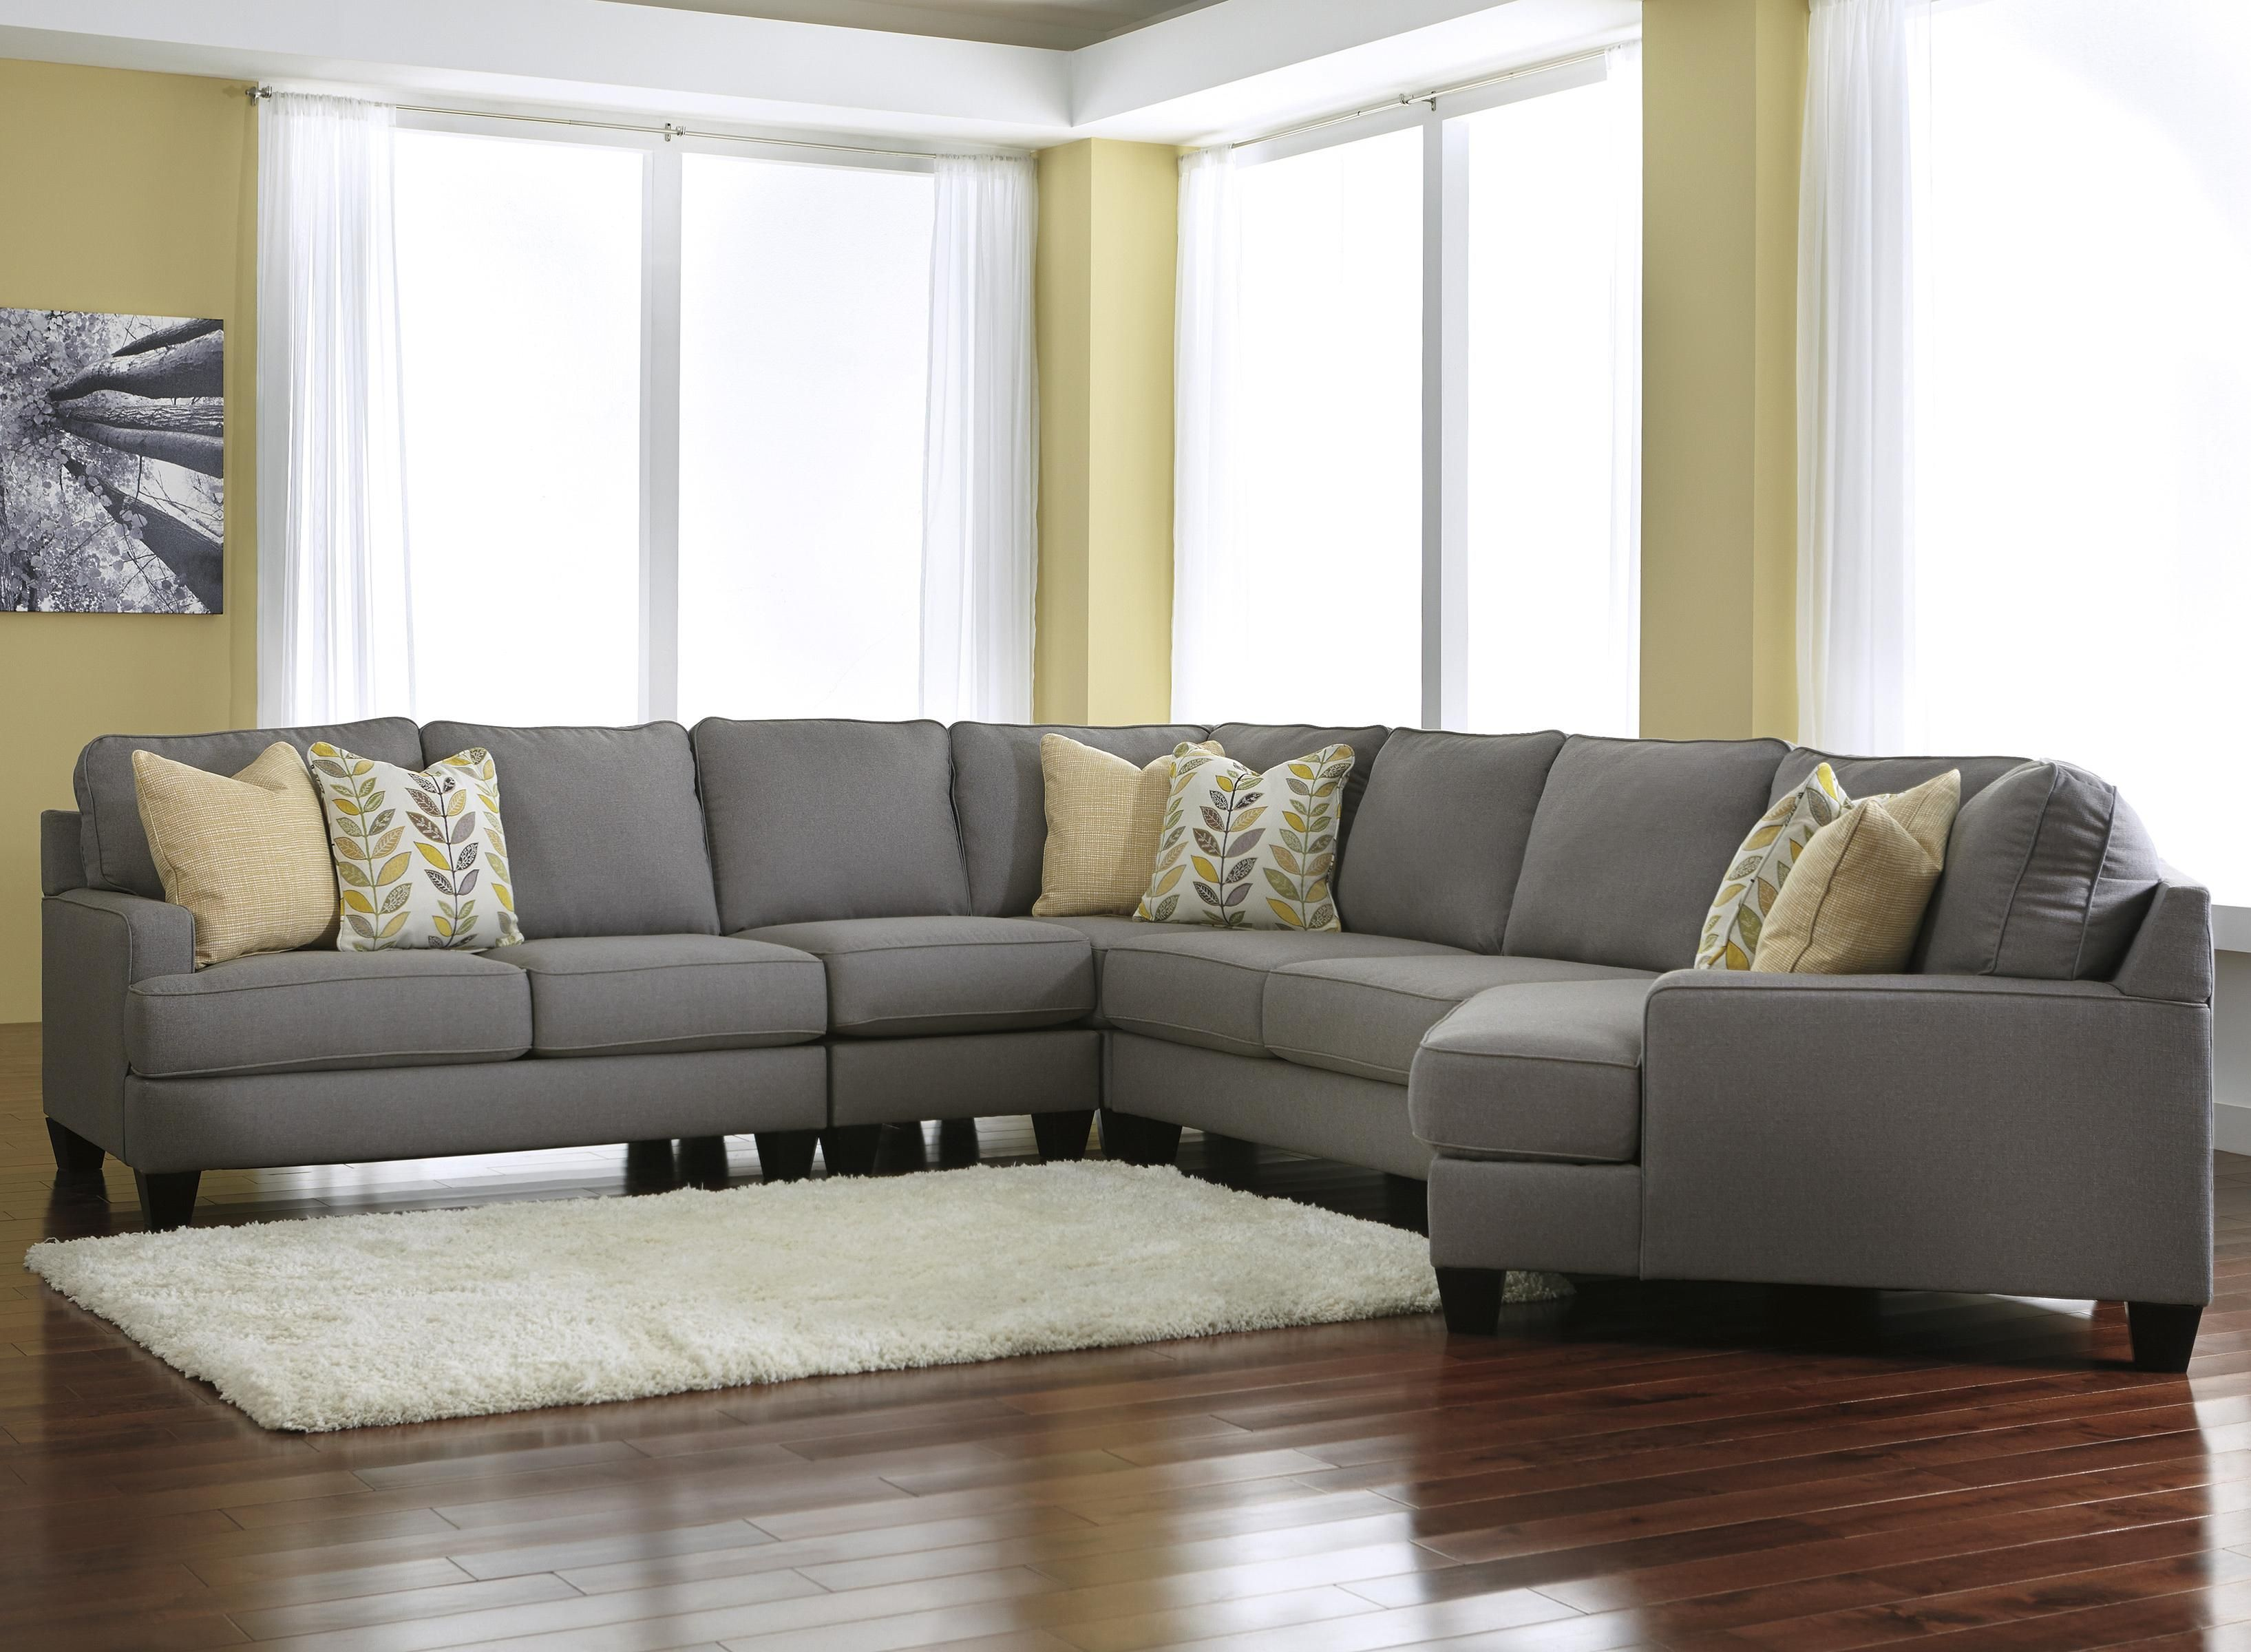 Living Room Designs With Sectionals Glamorous Chamberly  Alloy Modern 5Piece Sectional Sofa With Right Cuddler Review